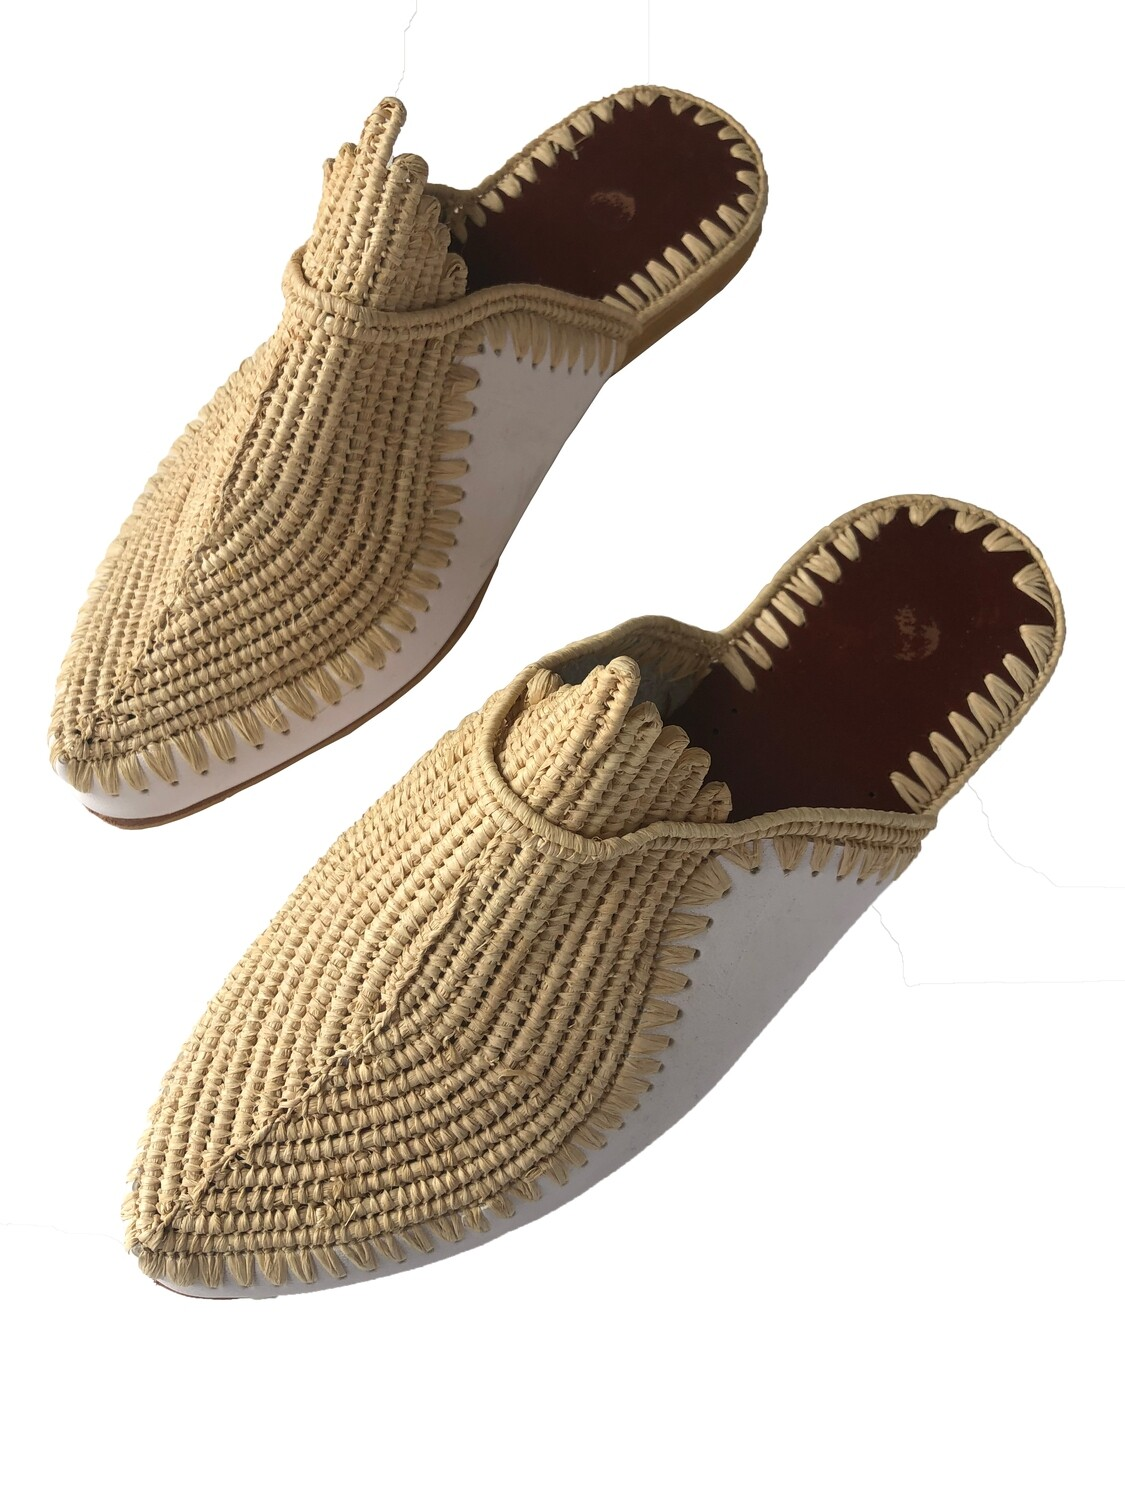 Hand woven raffia slides white leather and natural